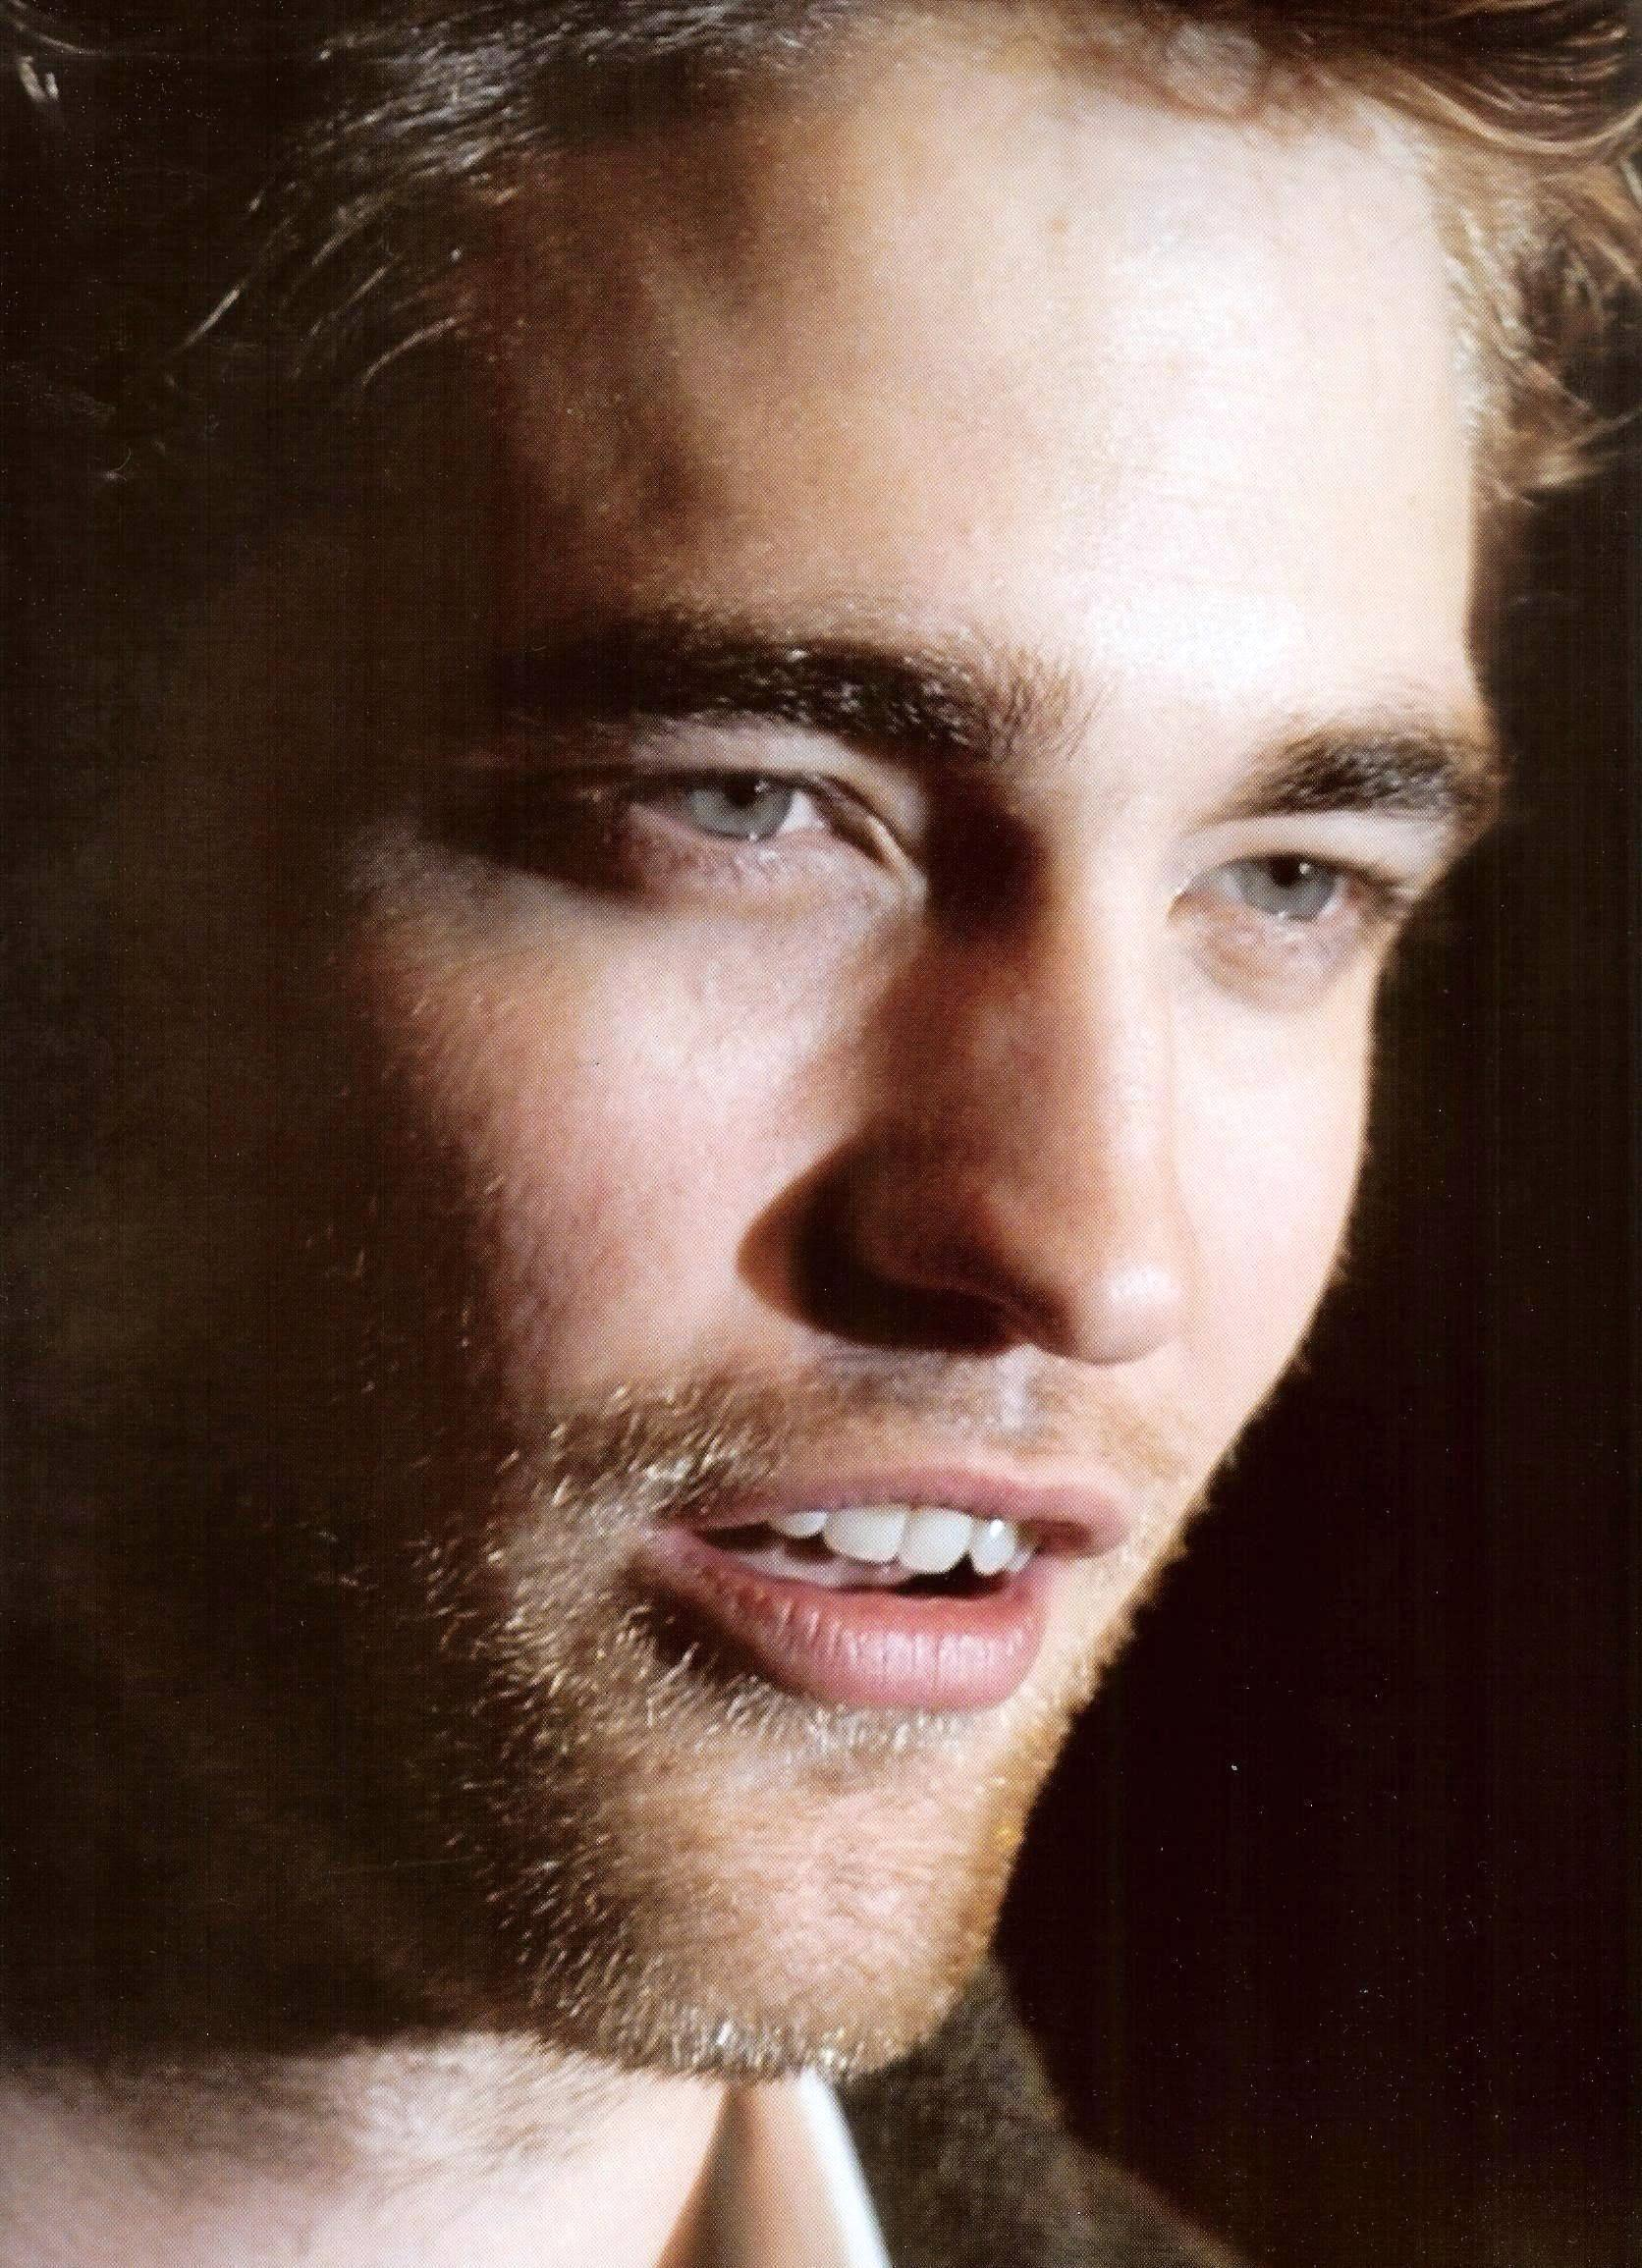 robert pattinson - Robert Pattinson Photo (19371703) - Fanpop Robert Pattinson